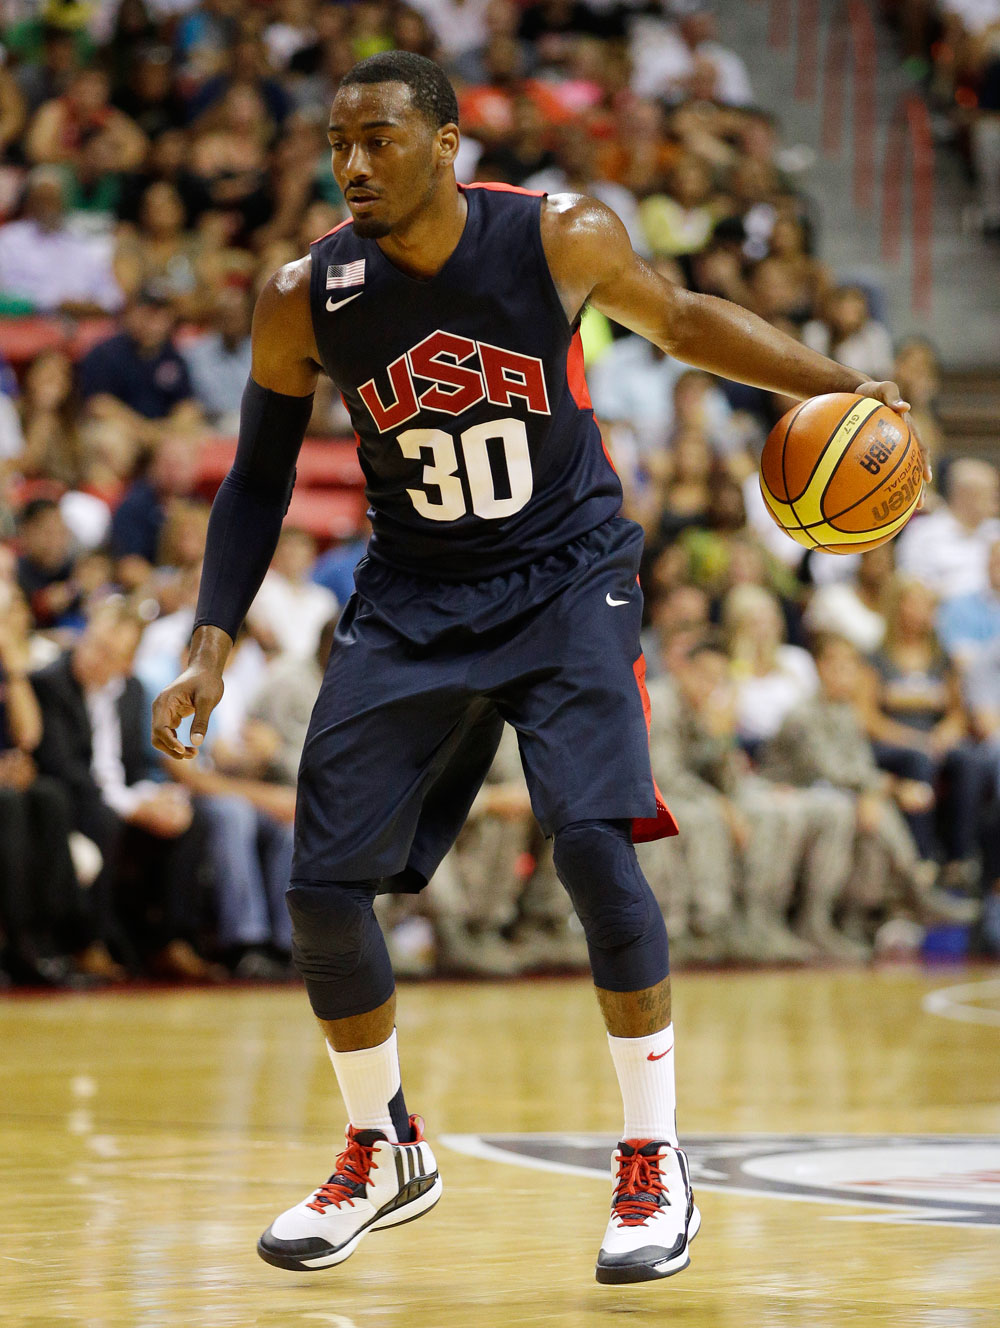 Wizards star Wall discusses charity, Team USA